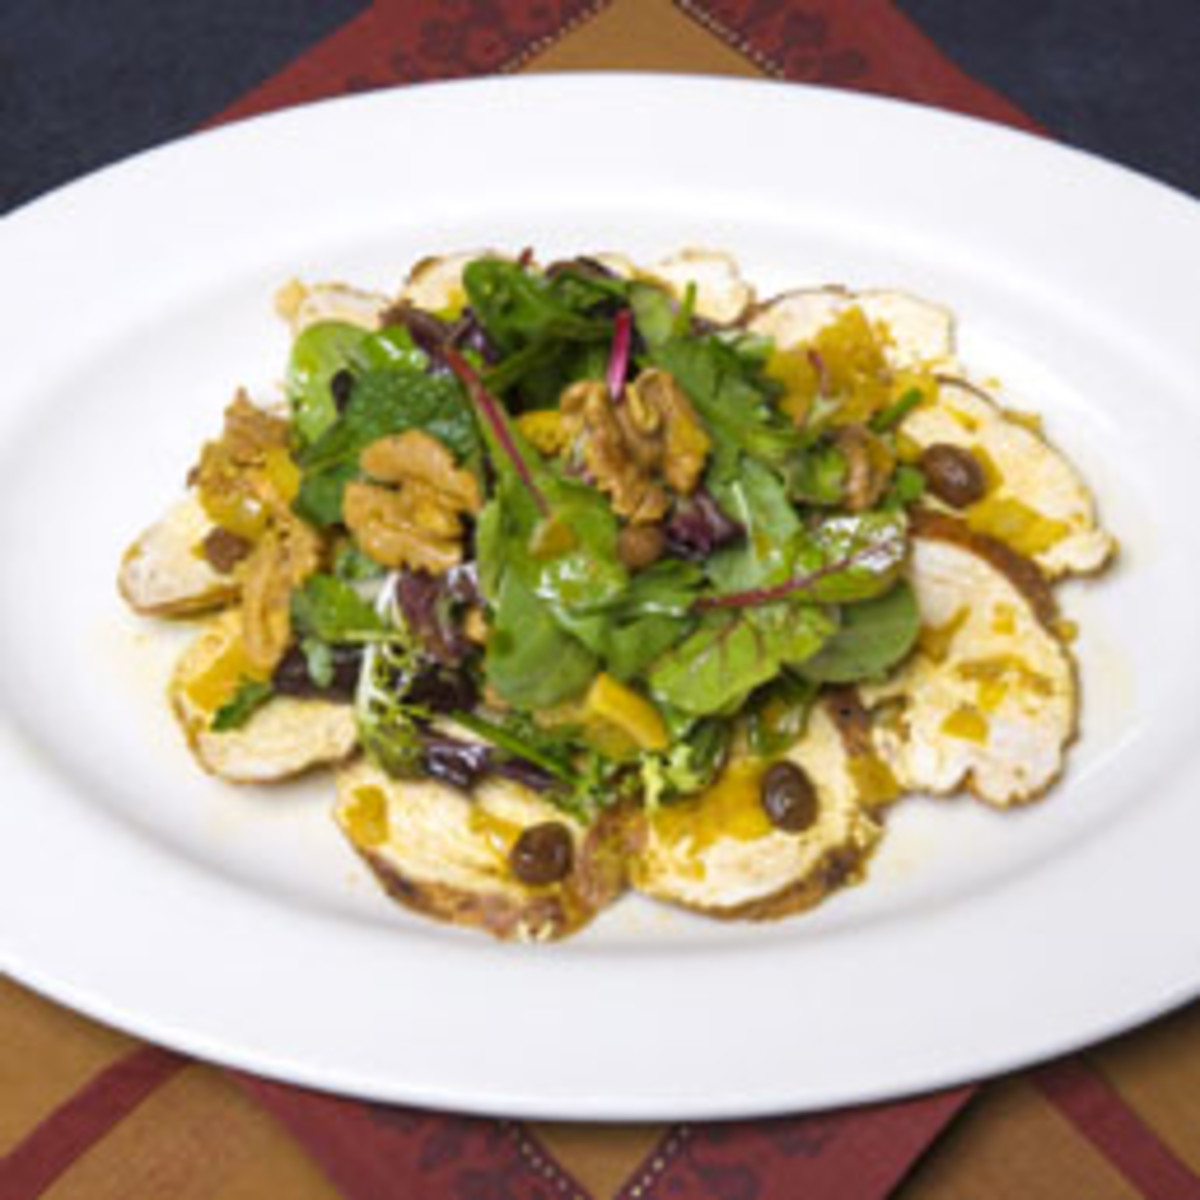 Royal Walnut Spiced Chicken Salad